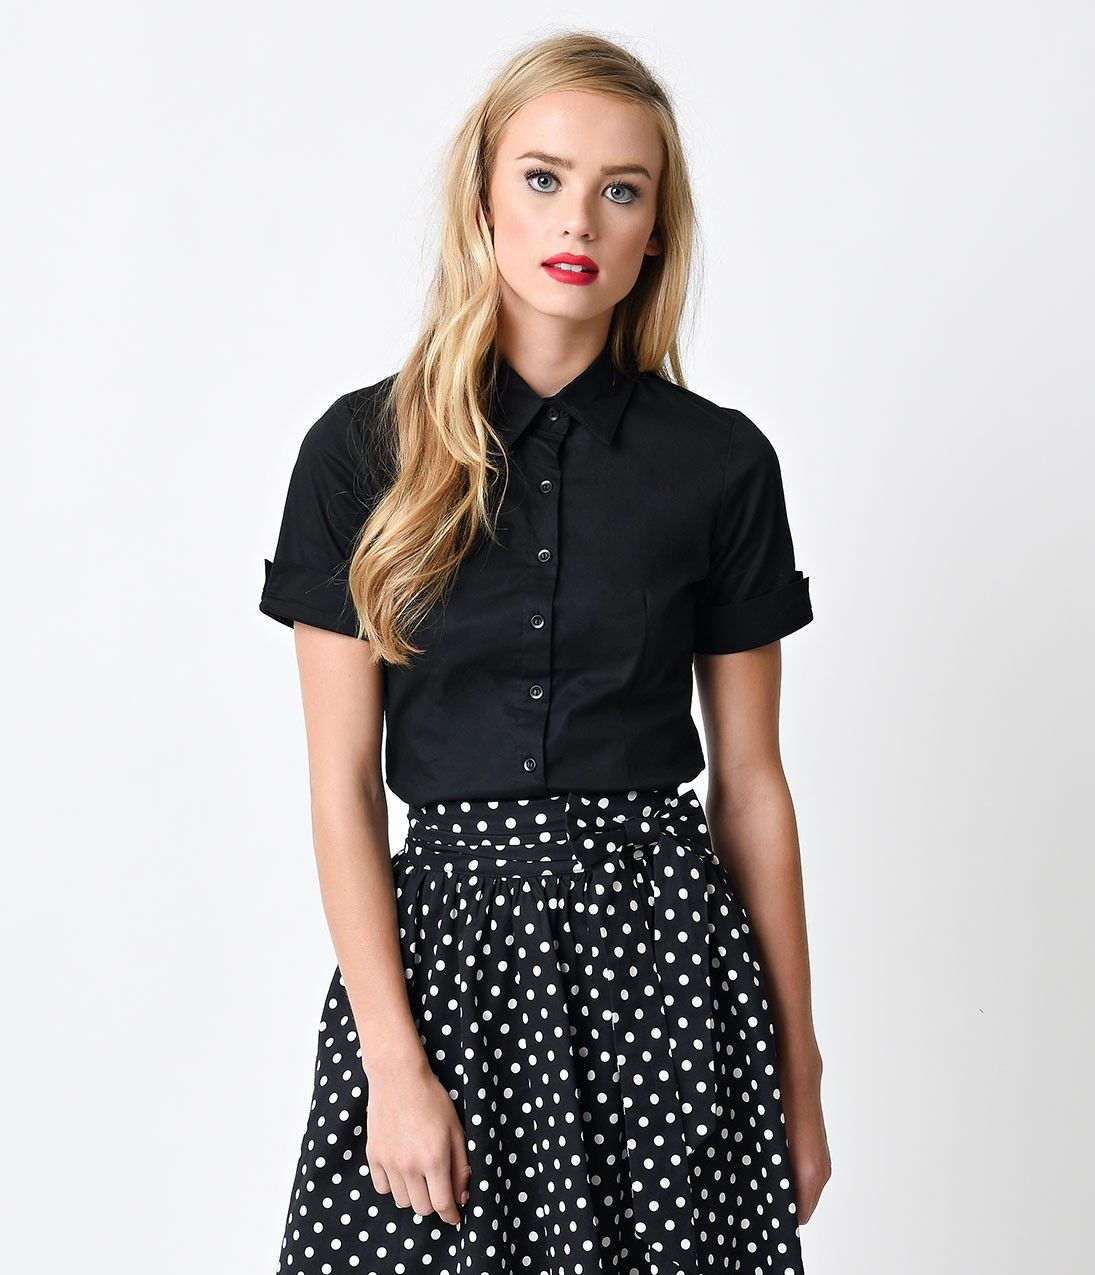 Black Collared Short Sleeve Button Up Blouse | This ...